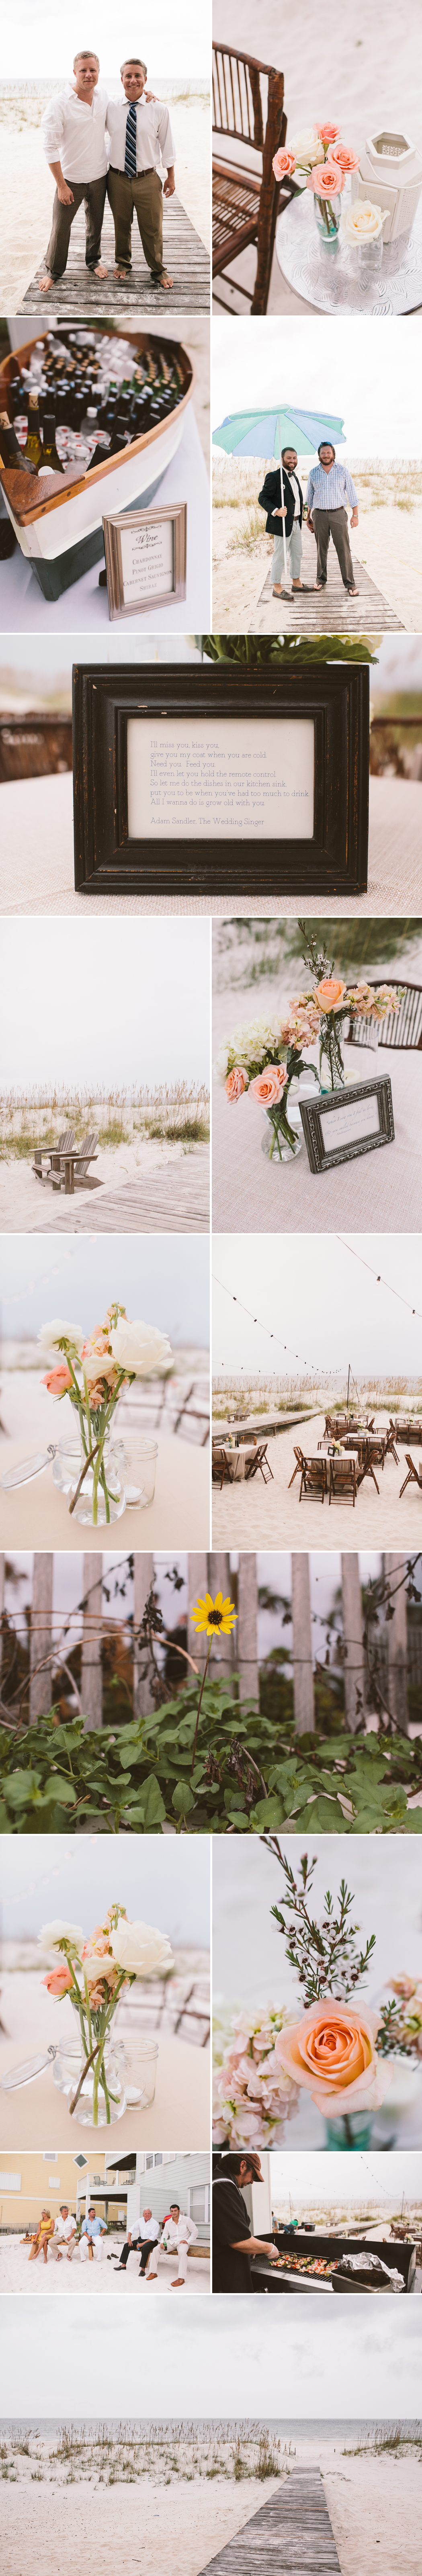 beach-wedding-2